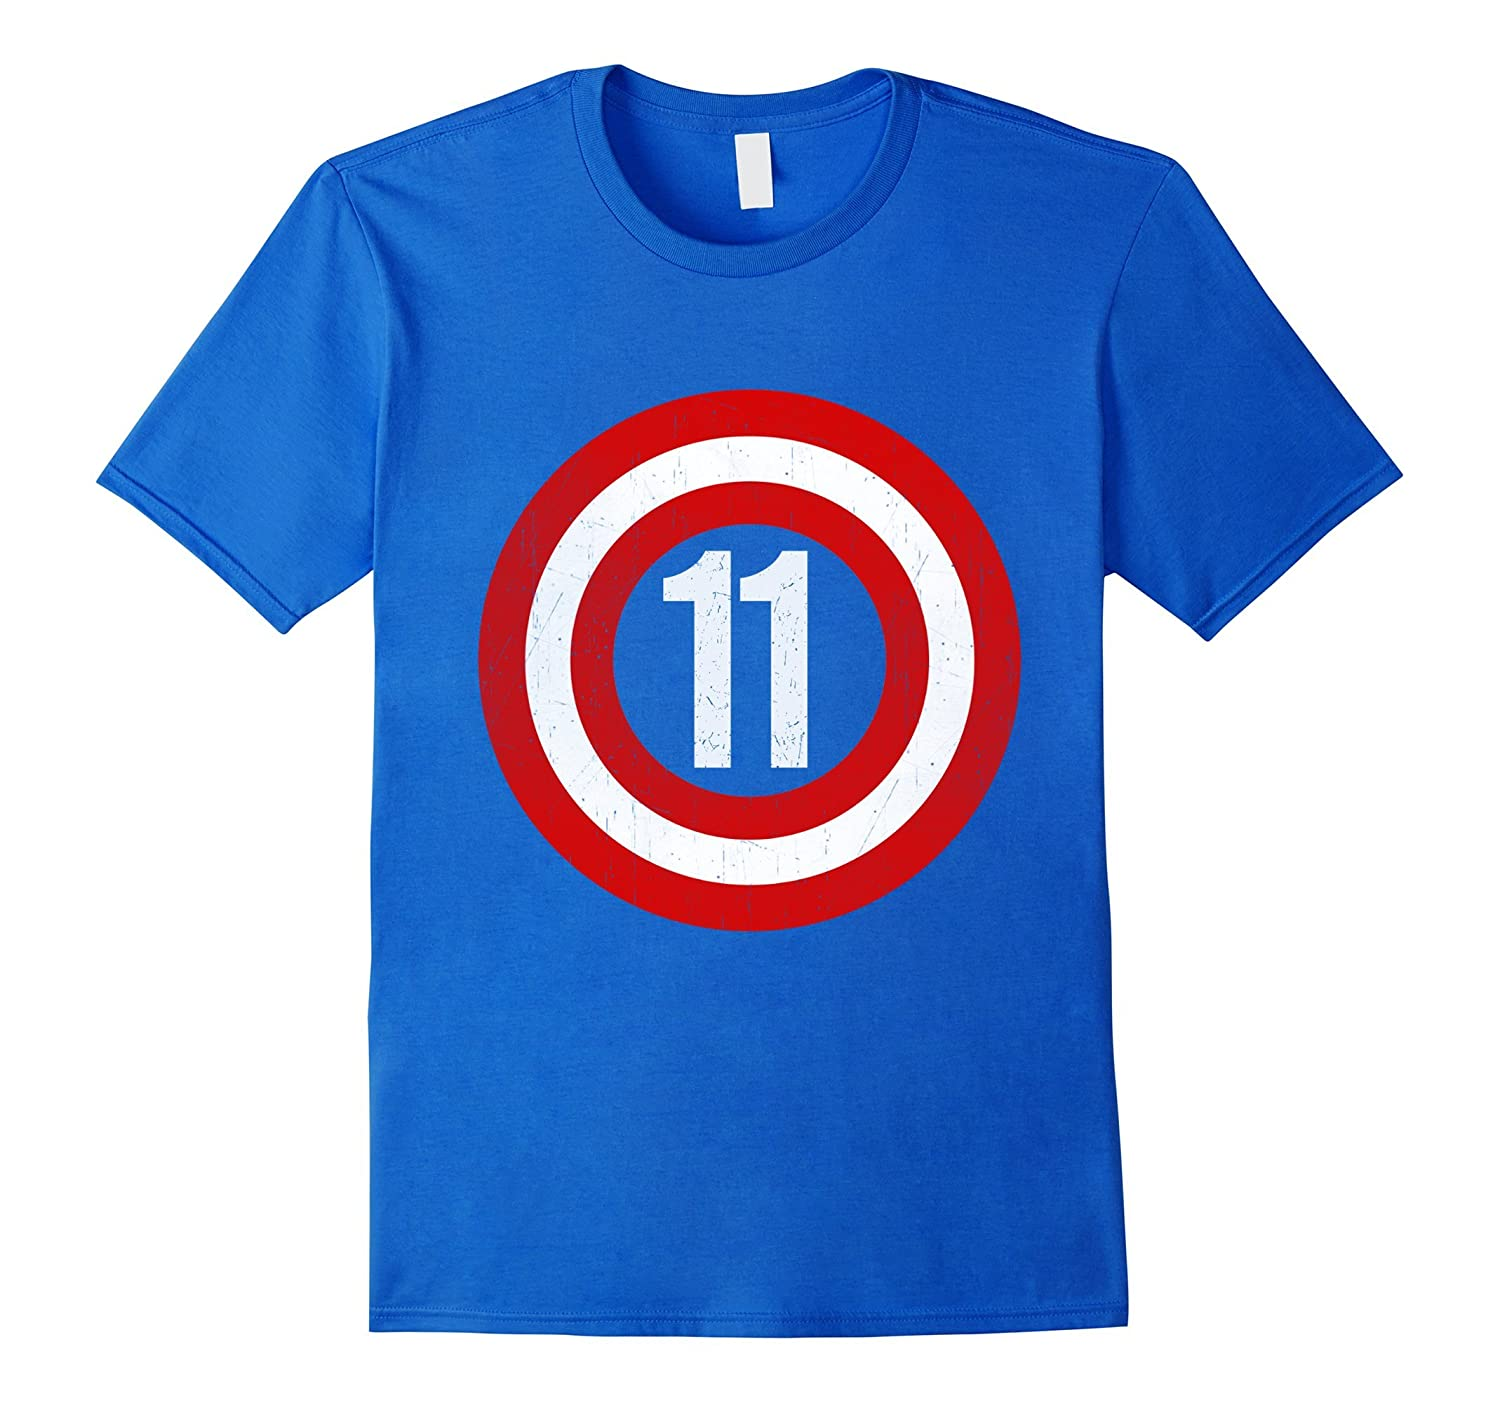 Captain 11th Birthday Tshirt Gift 11 Years Old Kids Boy Girl TD